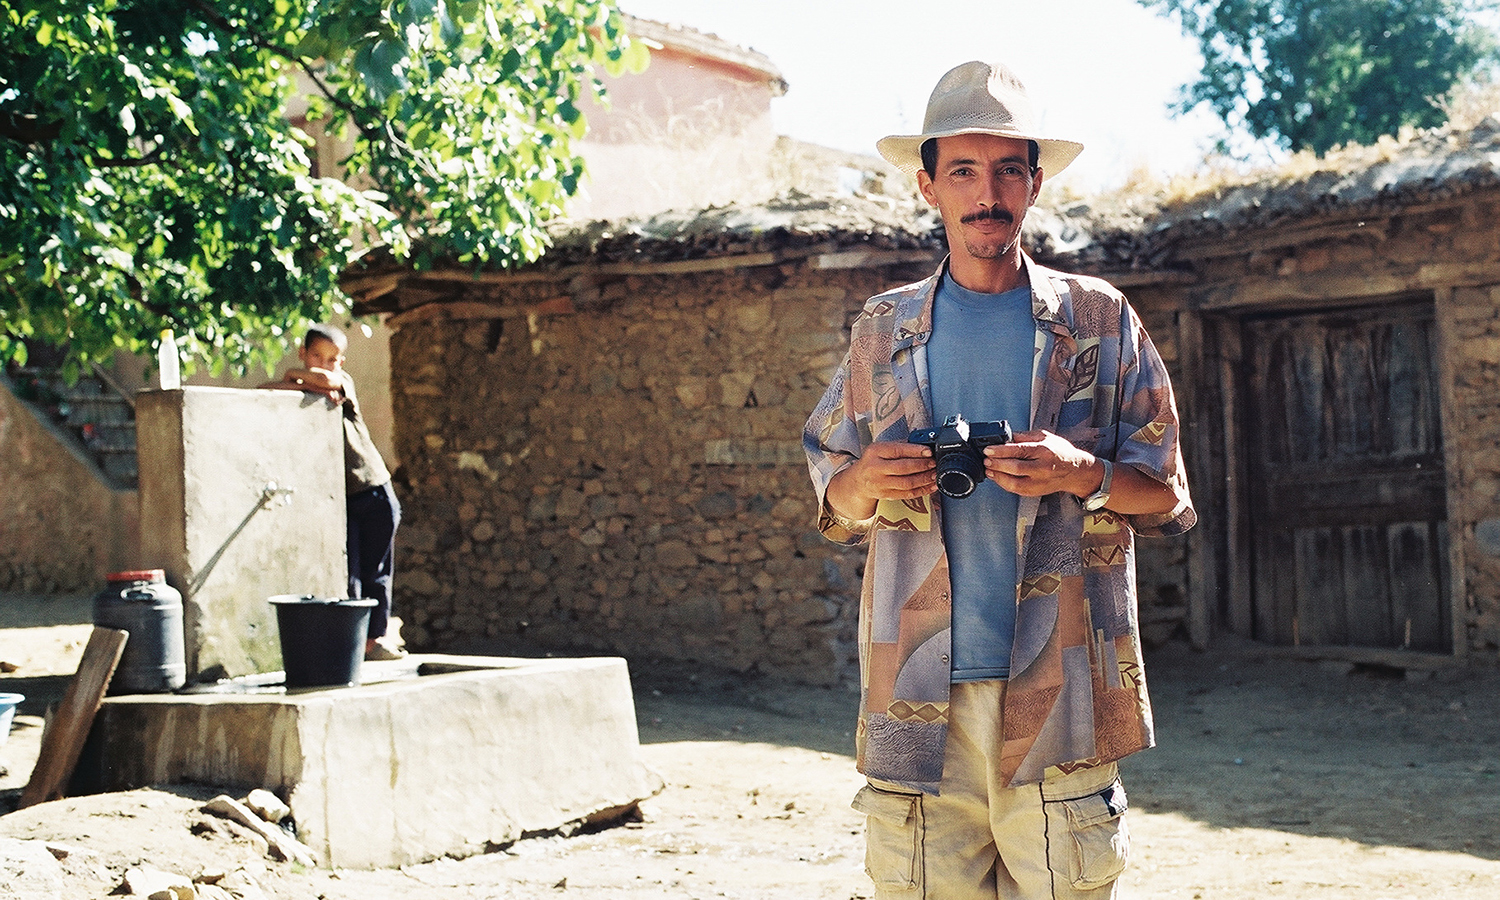 Village Photographer in Morocco | Photo by Adam Williams, Humanitou